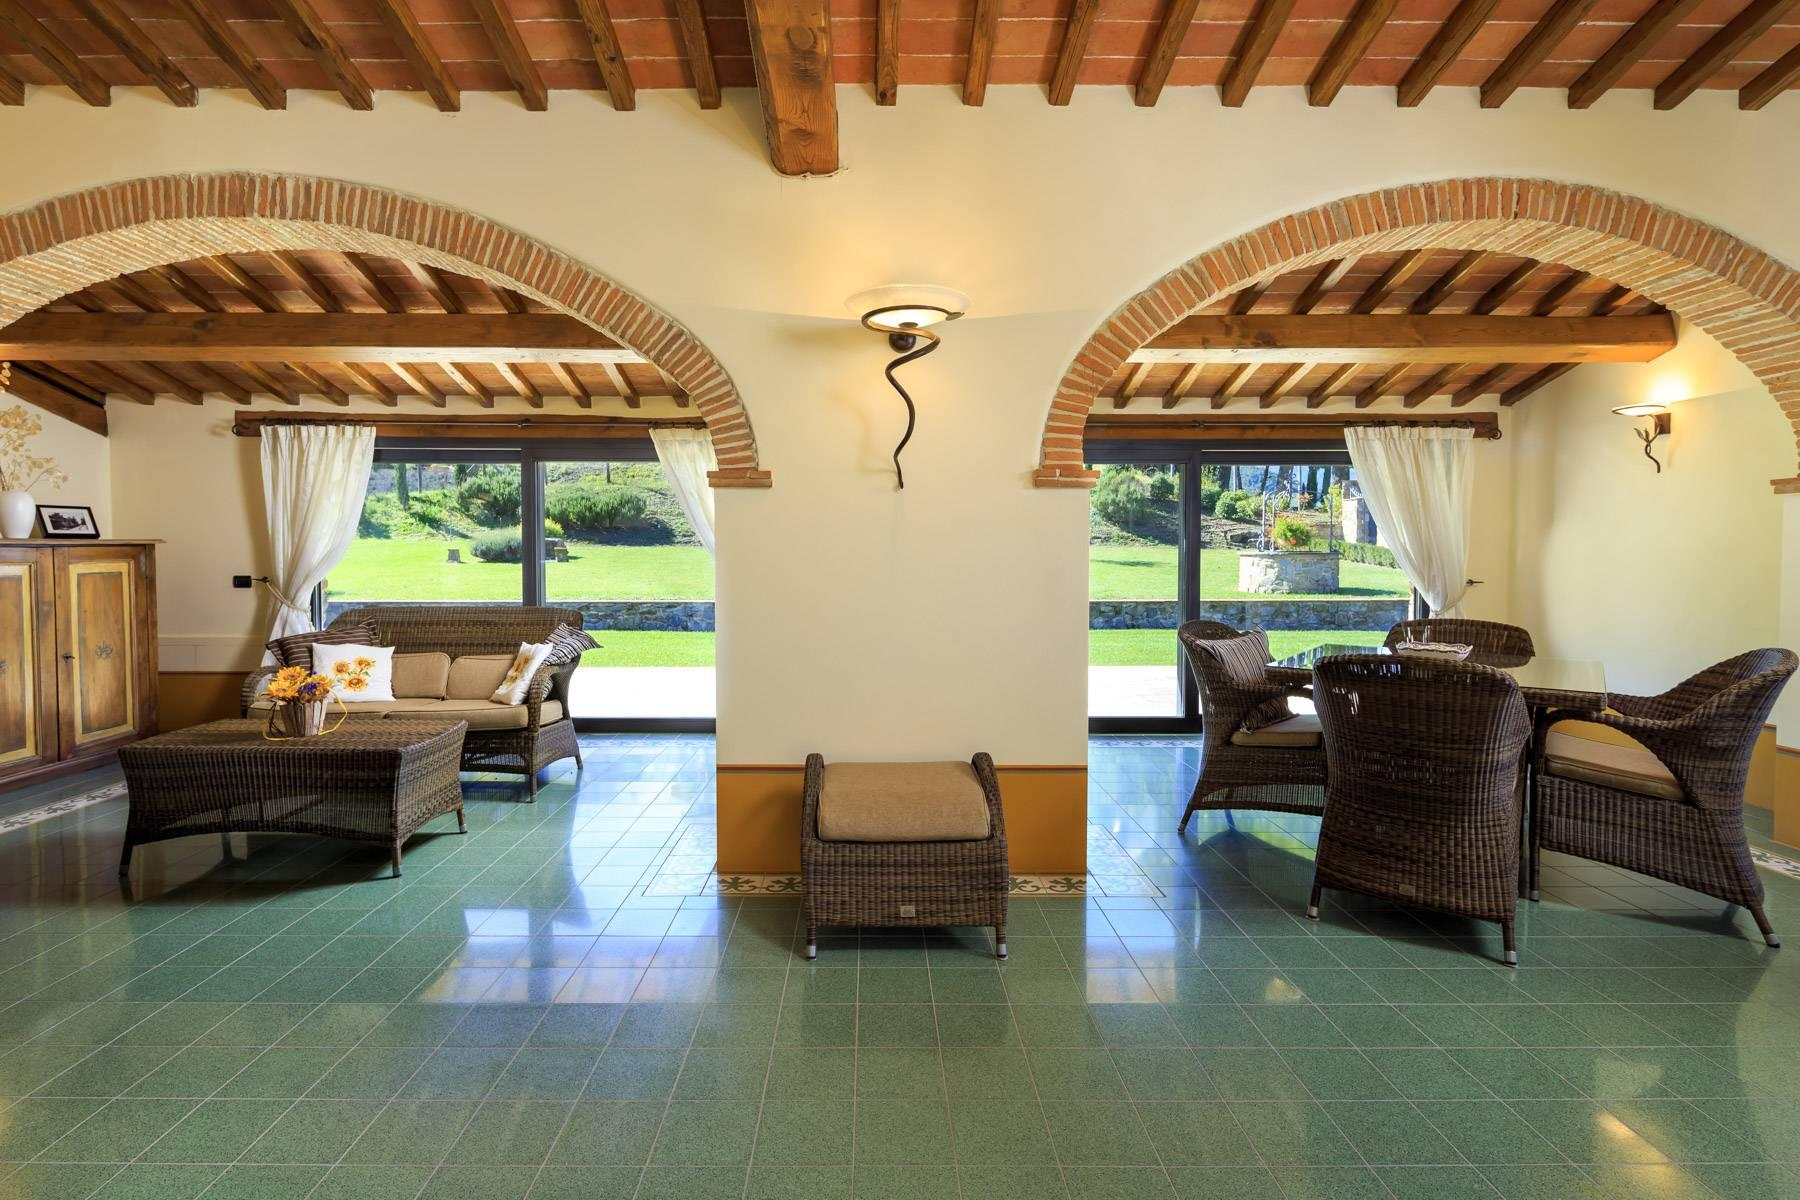 Marvelous estate with views over the Casentino valley - 17